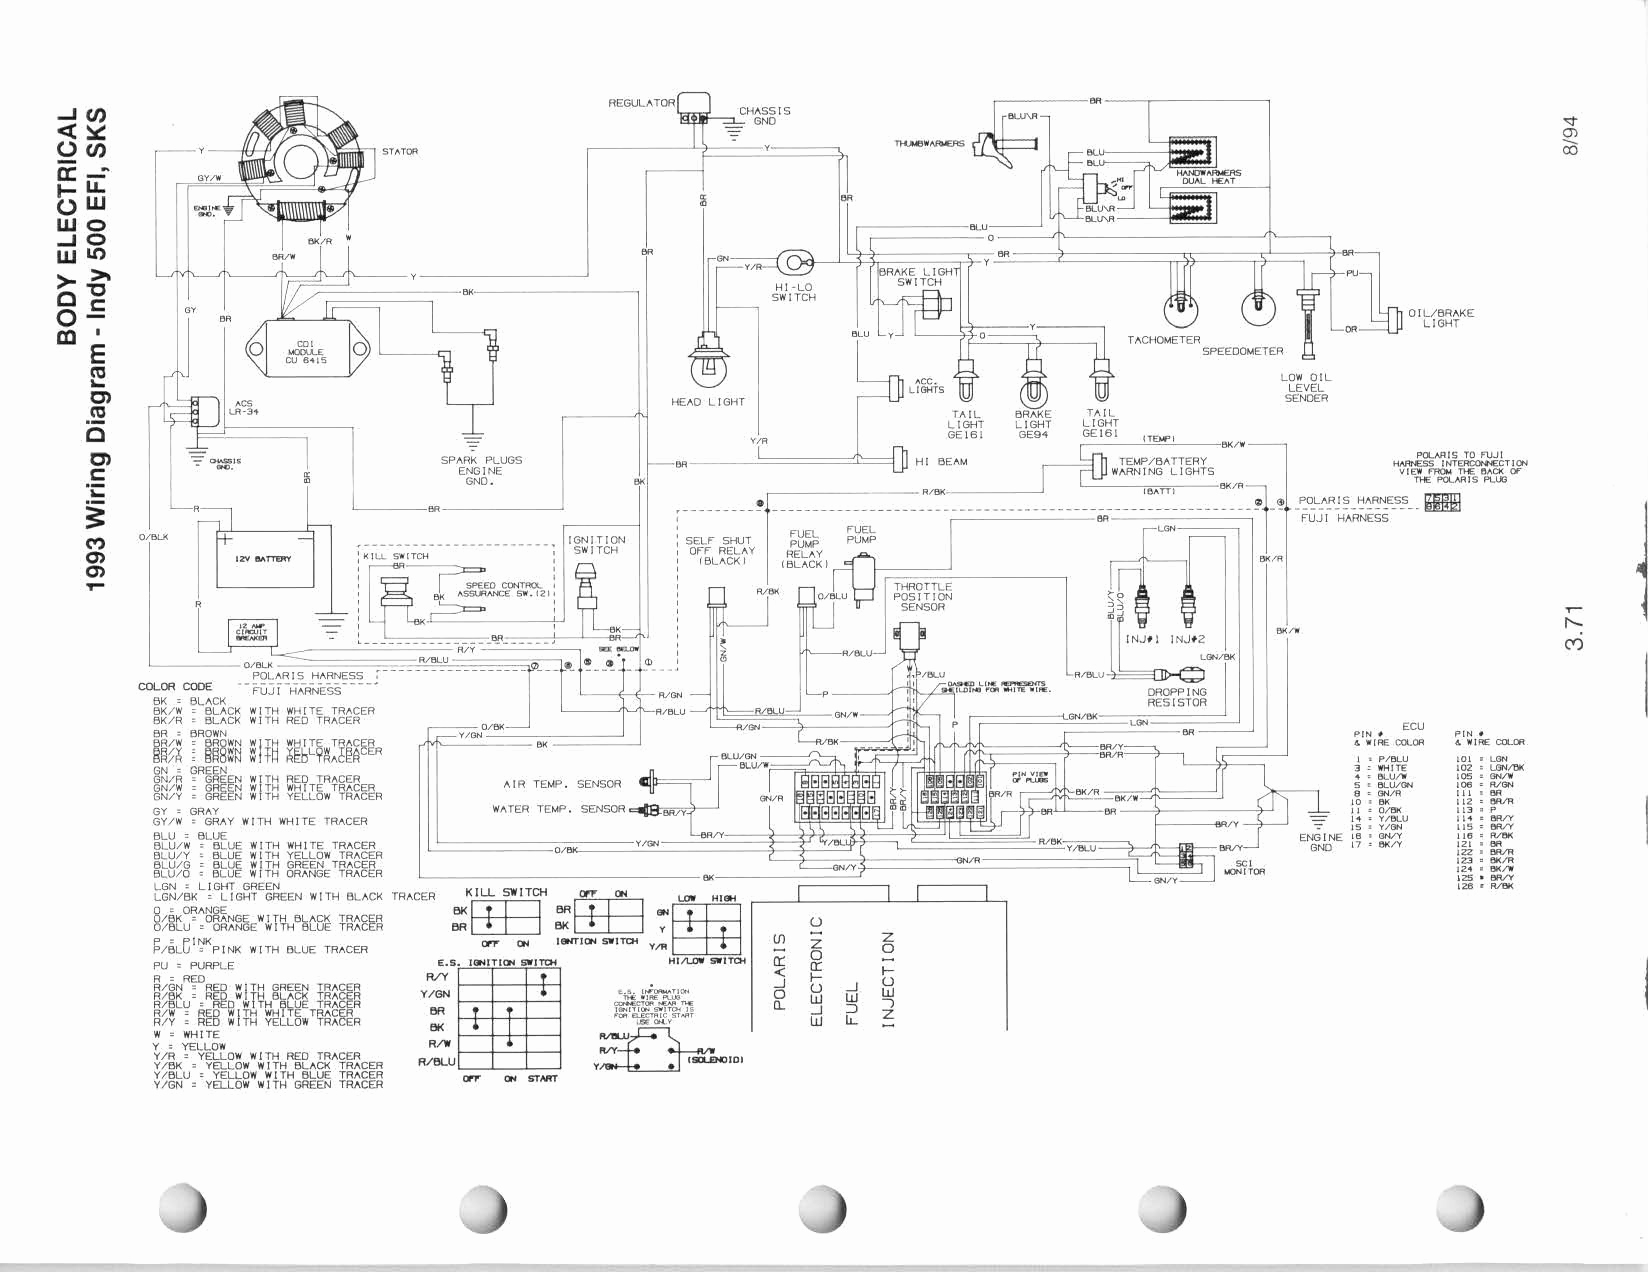 polaris ranger wiring diagram | free wiring diagram polaris ranger 500 wiring diagram 2006 polaris ranger ignition wiring diagram #1